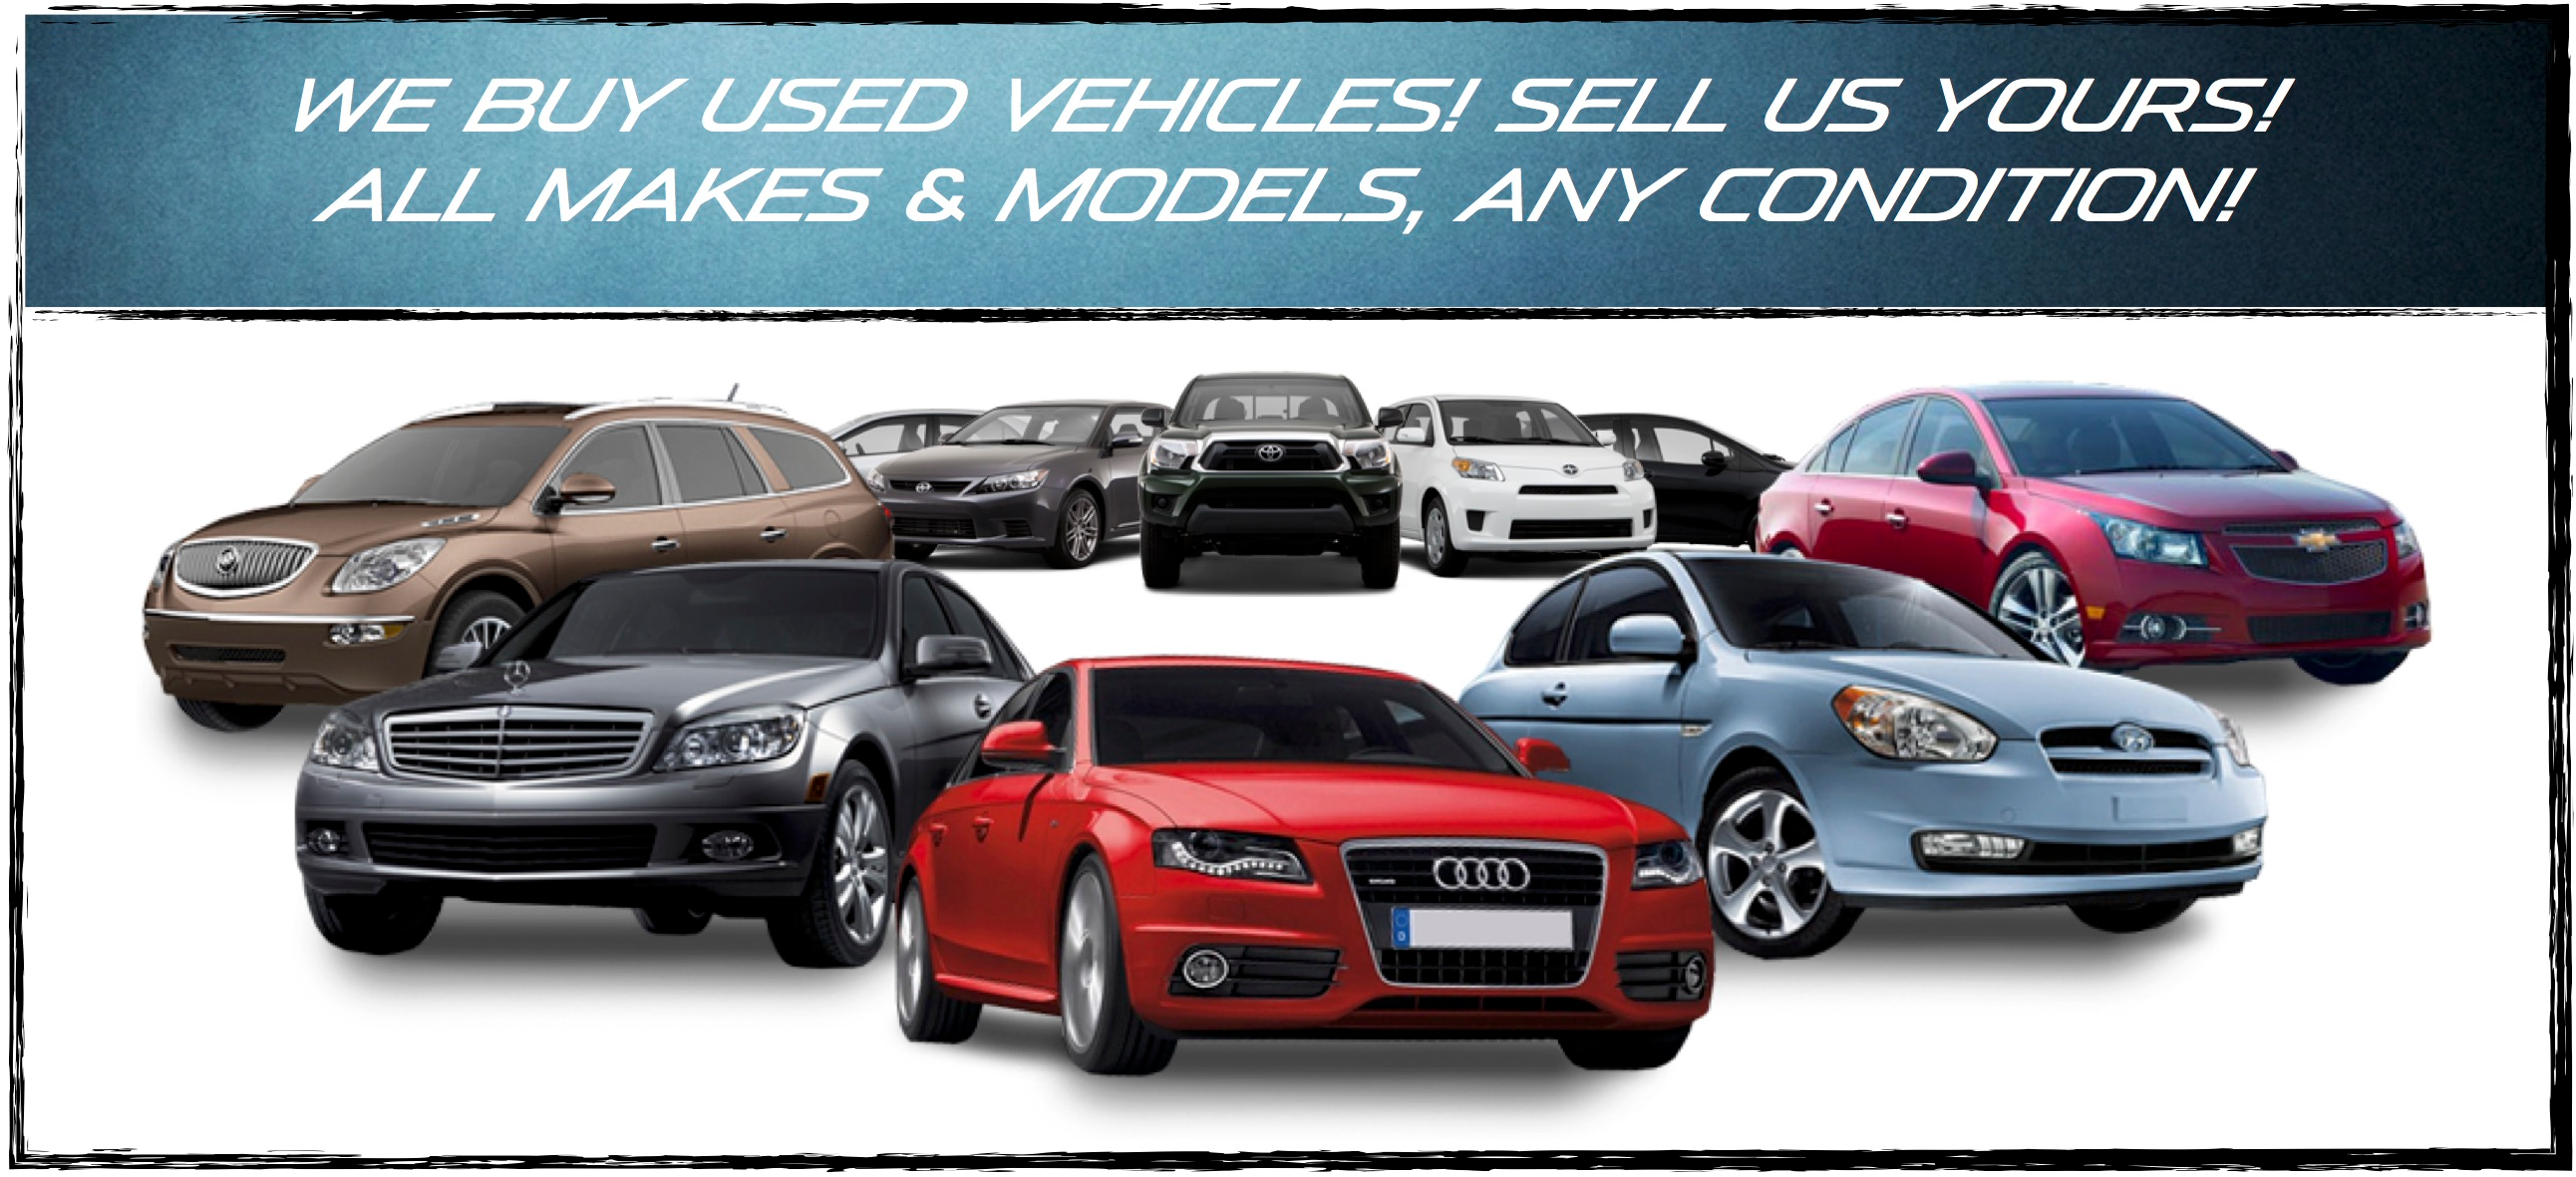 Inspirational We Buy Used Cars